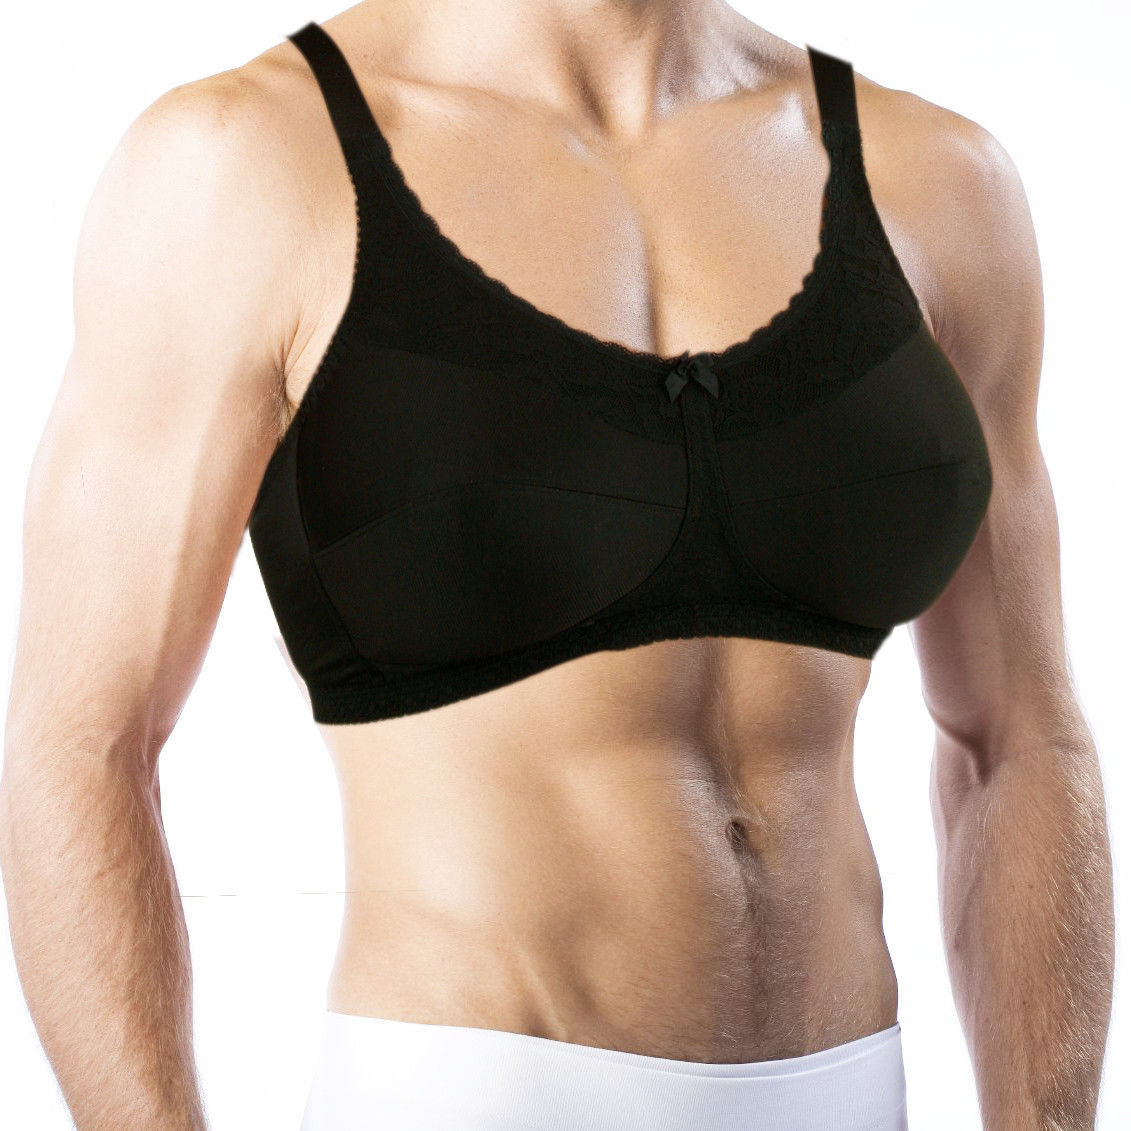 Bra For Men. Holds Silicone Breast Forms! Crossdressing, Transgender #770 - $39.99